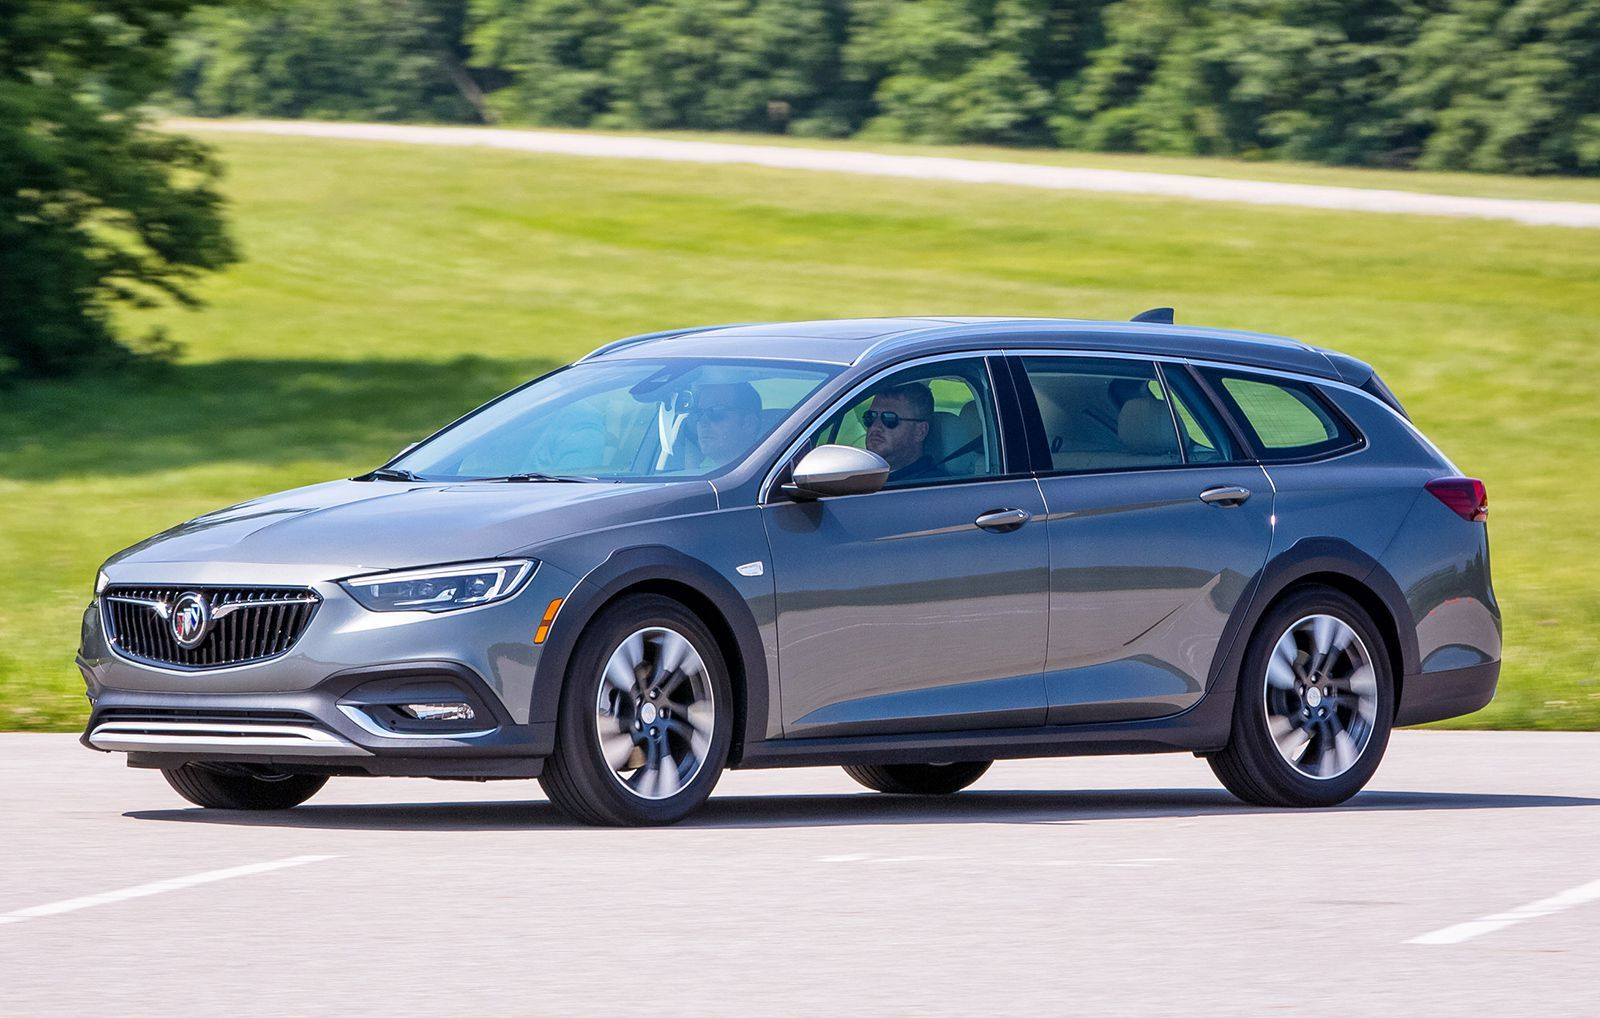 The Buick Regal Tourx Wagon Is Shockingly Awesome Buick Regal Buick Wagon Buick